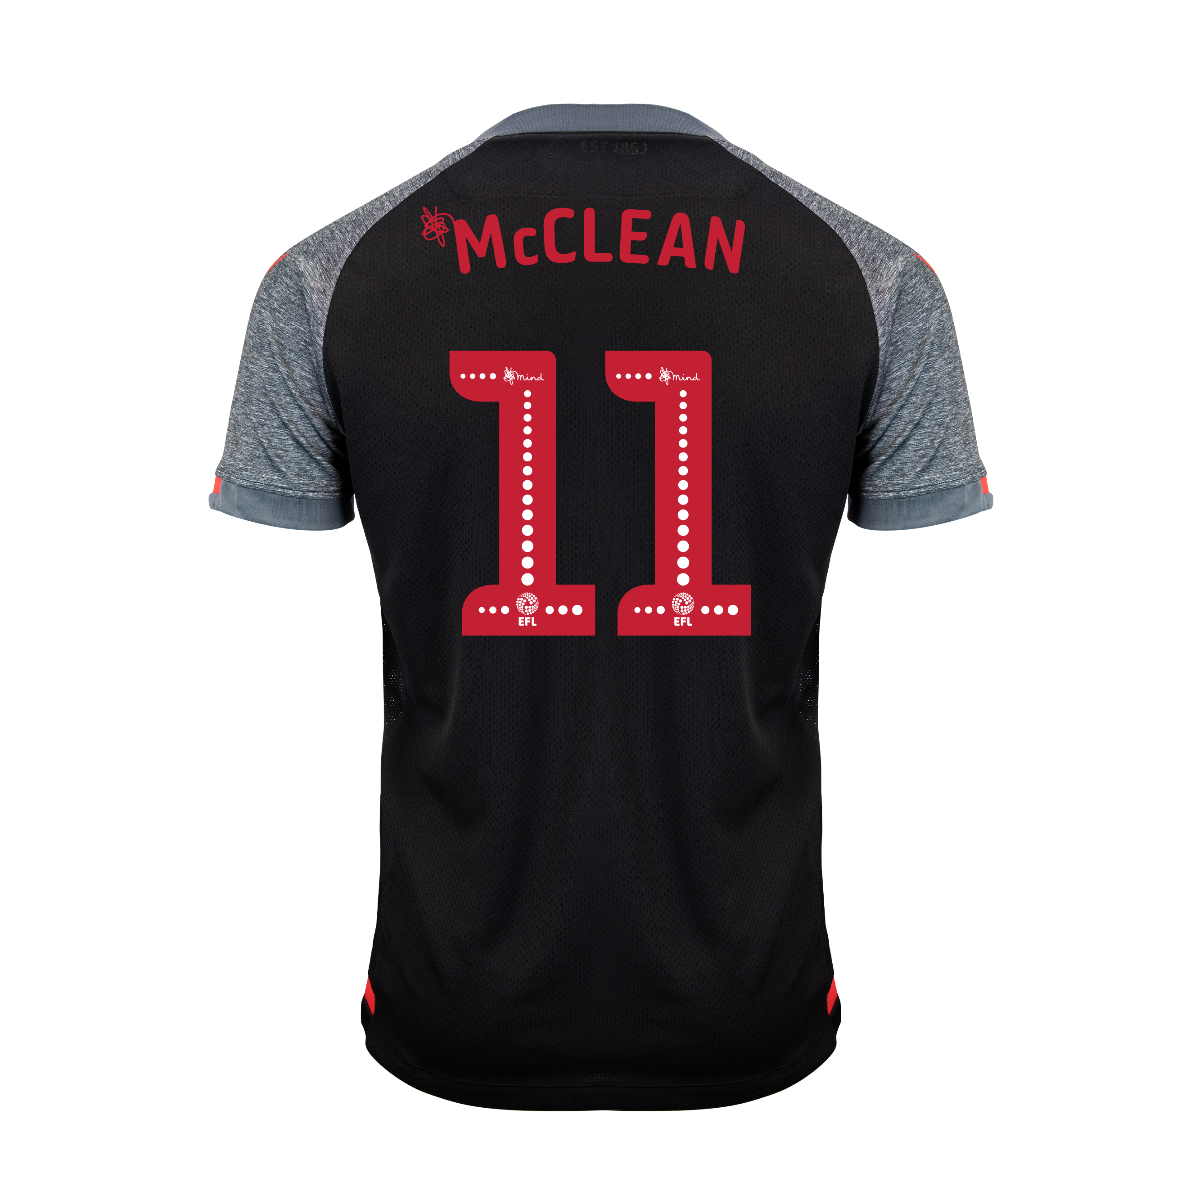 2019/20 Ladies Away Shirt - McClean